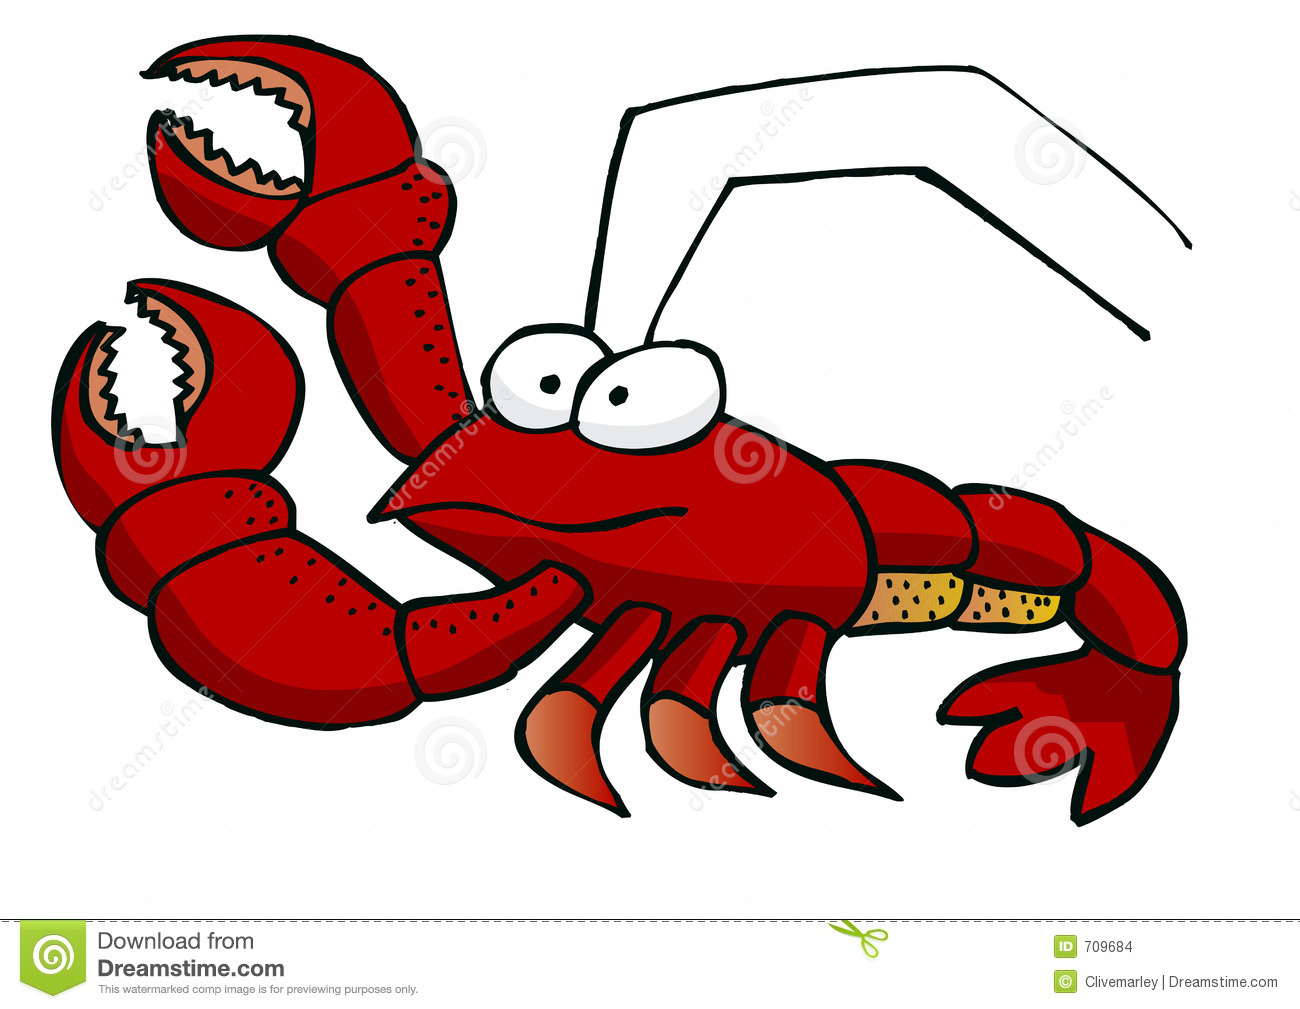 Lobster Stock Images - Image: 709684